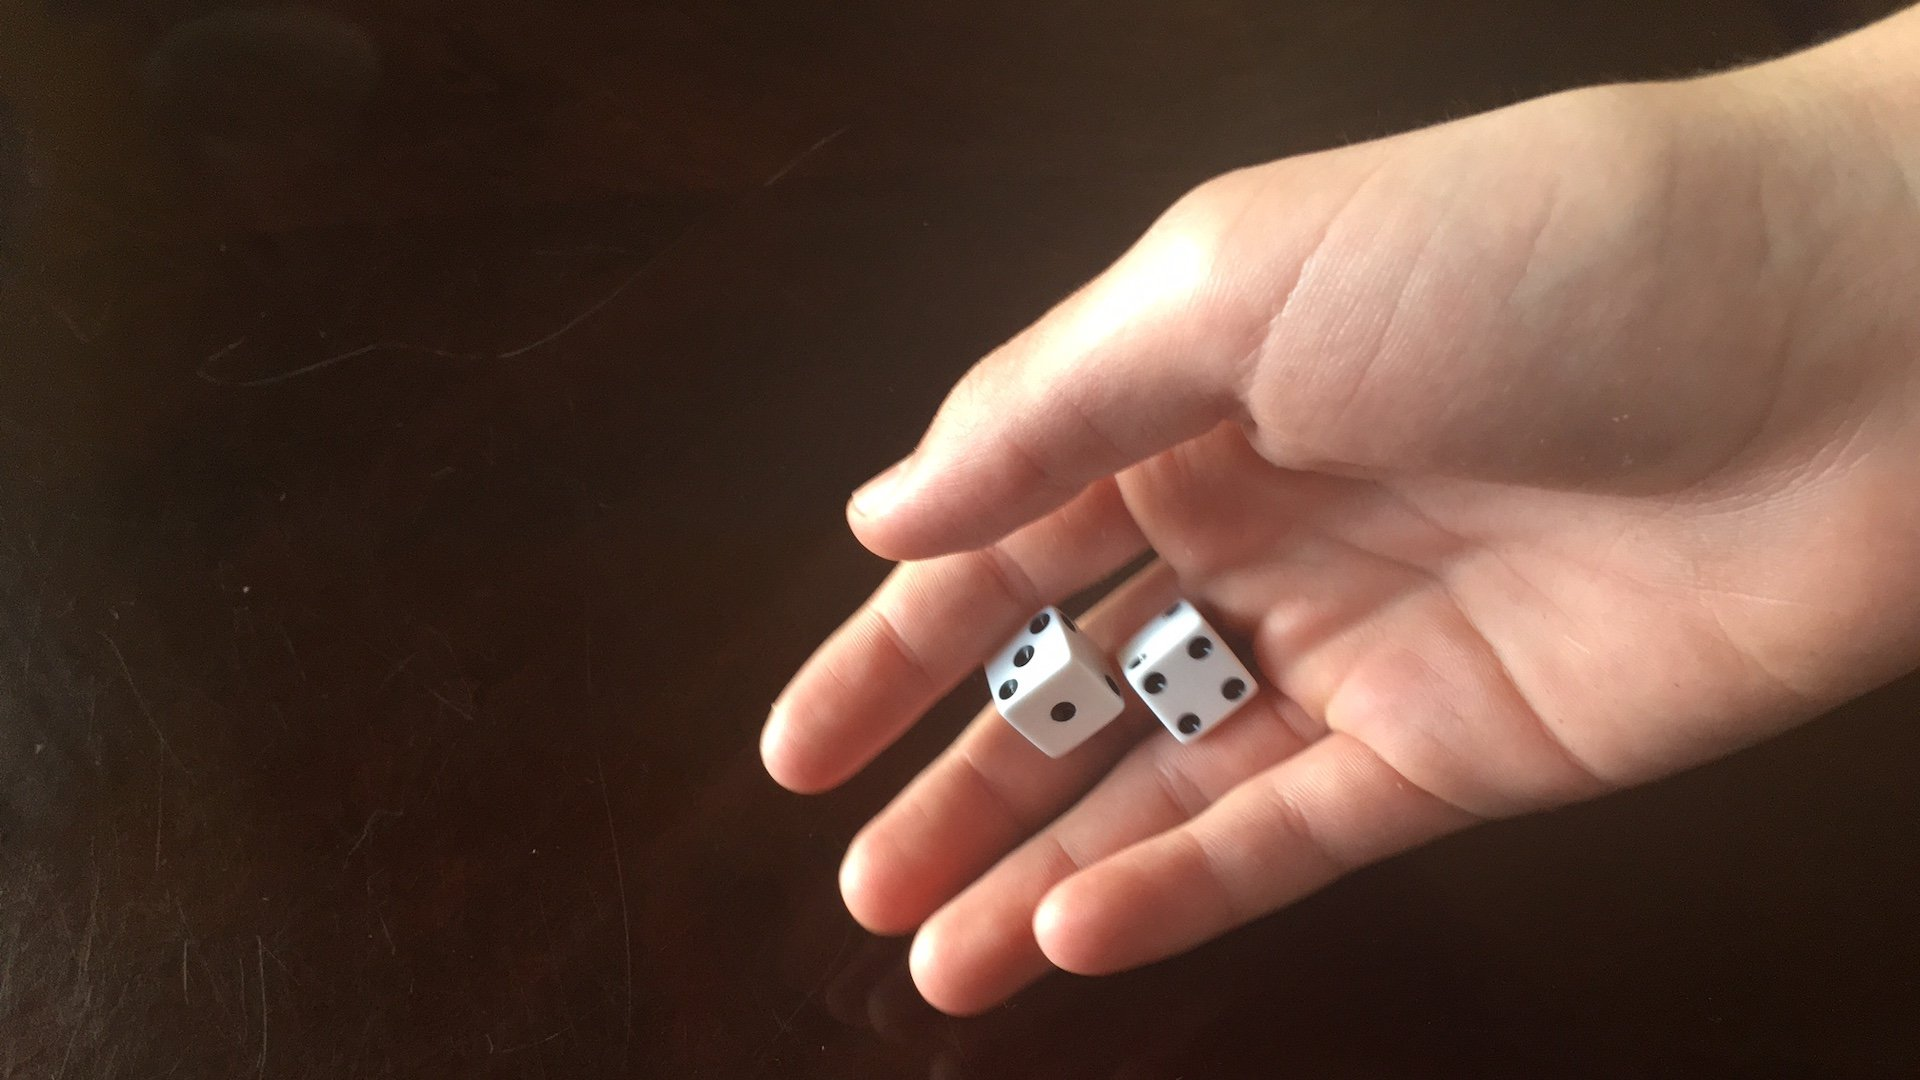 A hand rolling two dice.